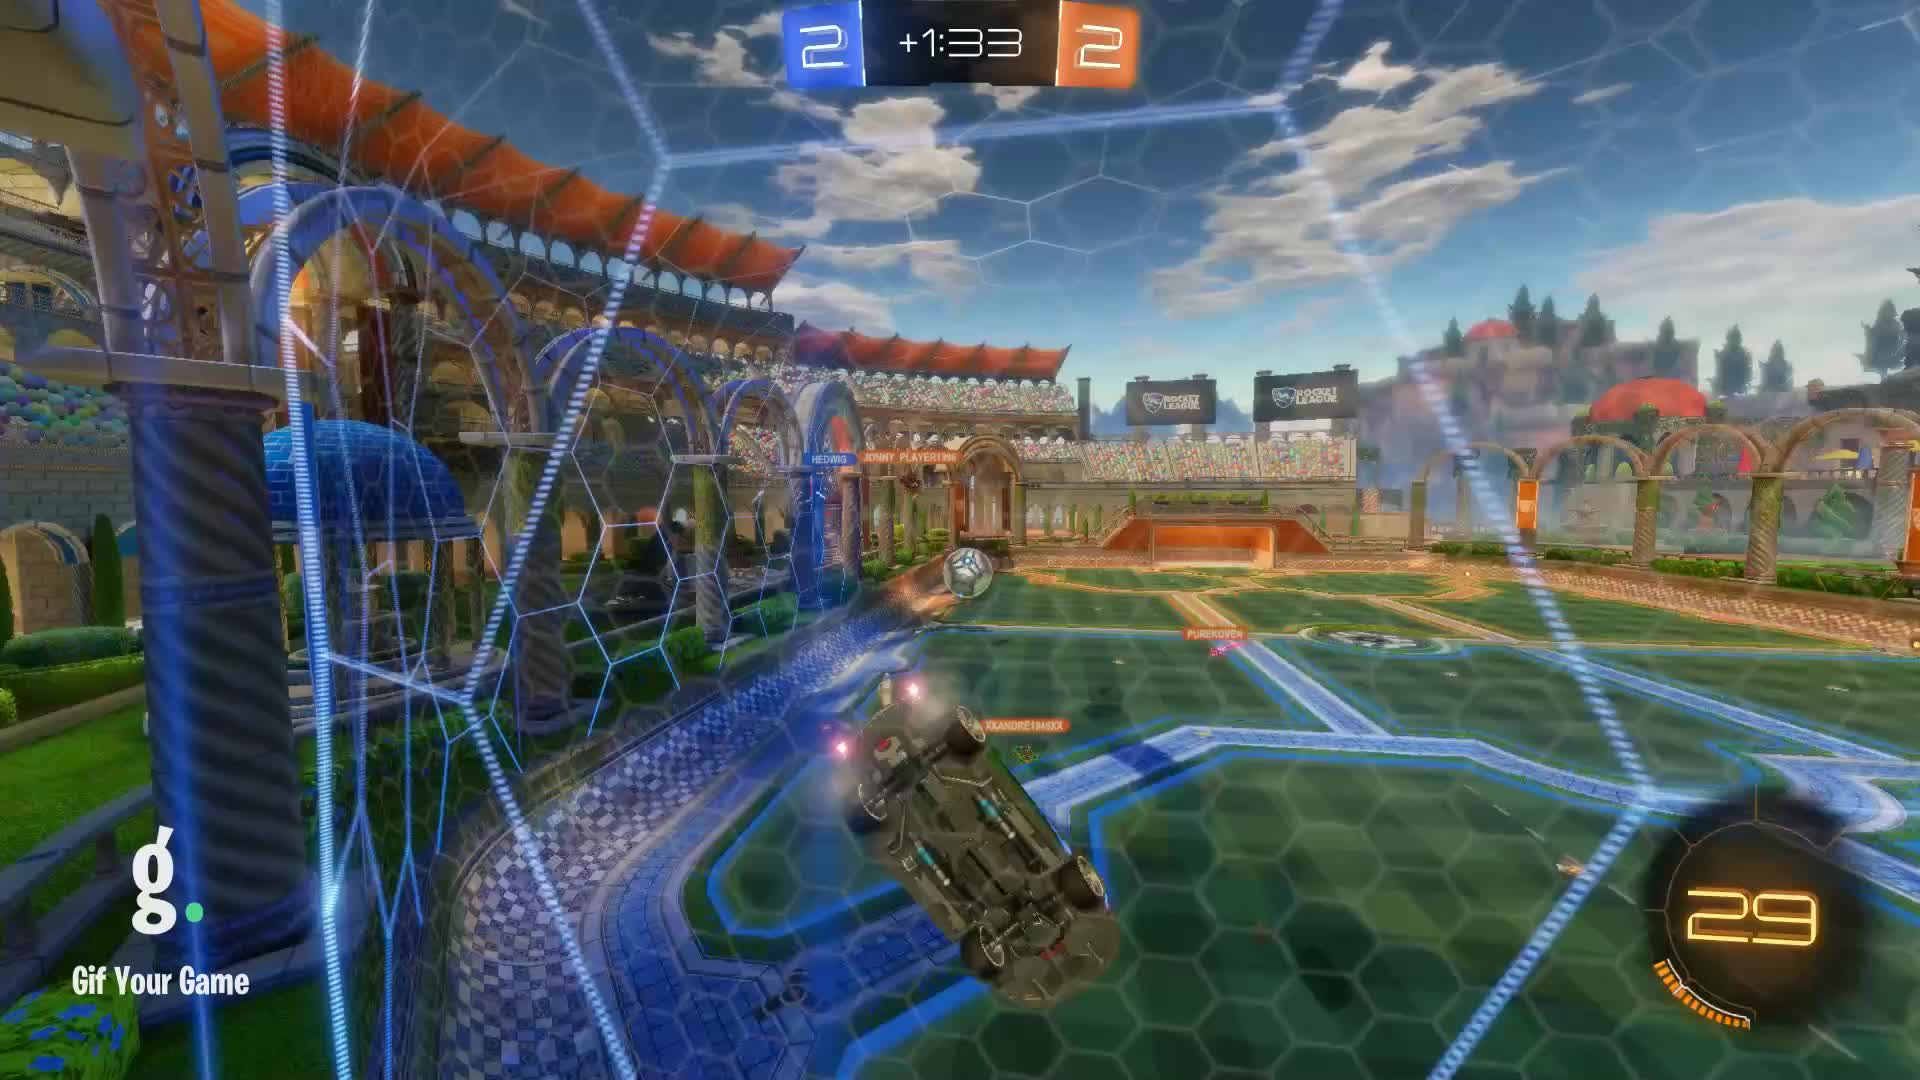 Gif Your Game, GifYourGame, Goal, Rocket League, RocketLeague, USSR Commander, Goal 5: USSR Commander GIFs